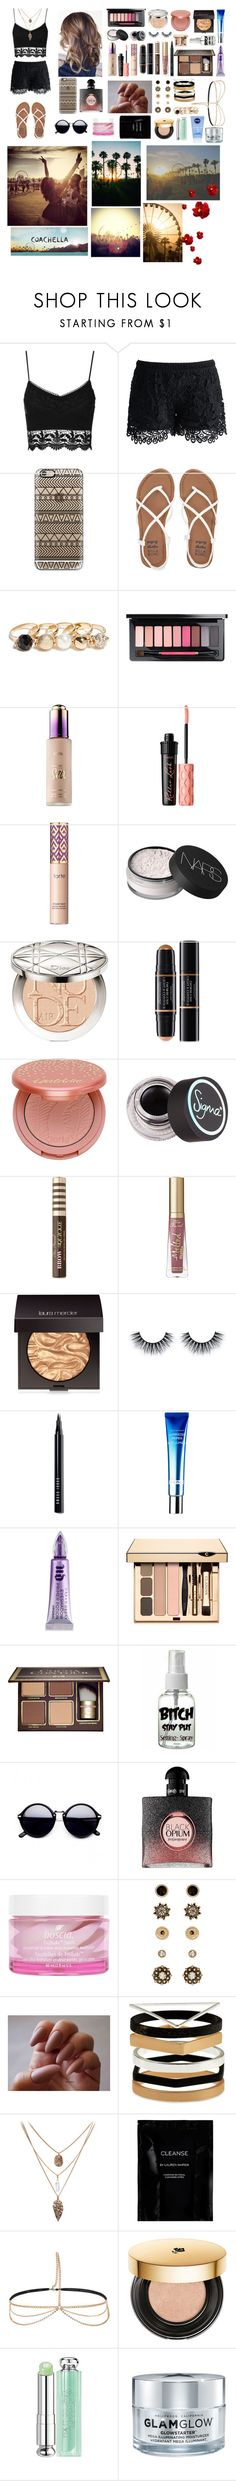 """""""Coachellaaaa"""" by ajlamutevelic ❤ liked on Polyvore featuring Topshop, Chicwish, Casetify, Billabong, GUESS, tarte, Benefit, NARS Cosmetics, Christian Dior and Sigma"""